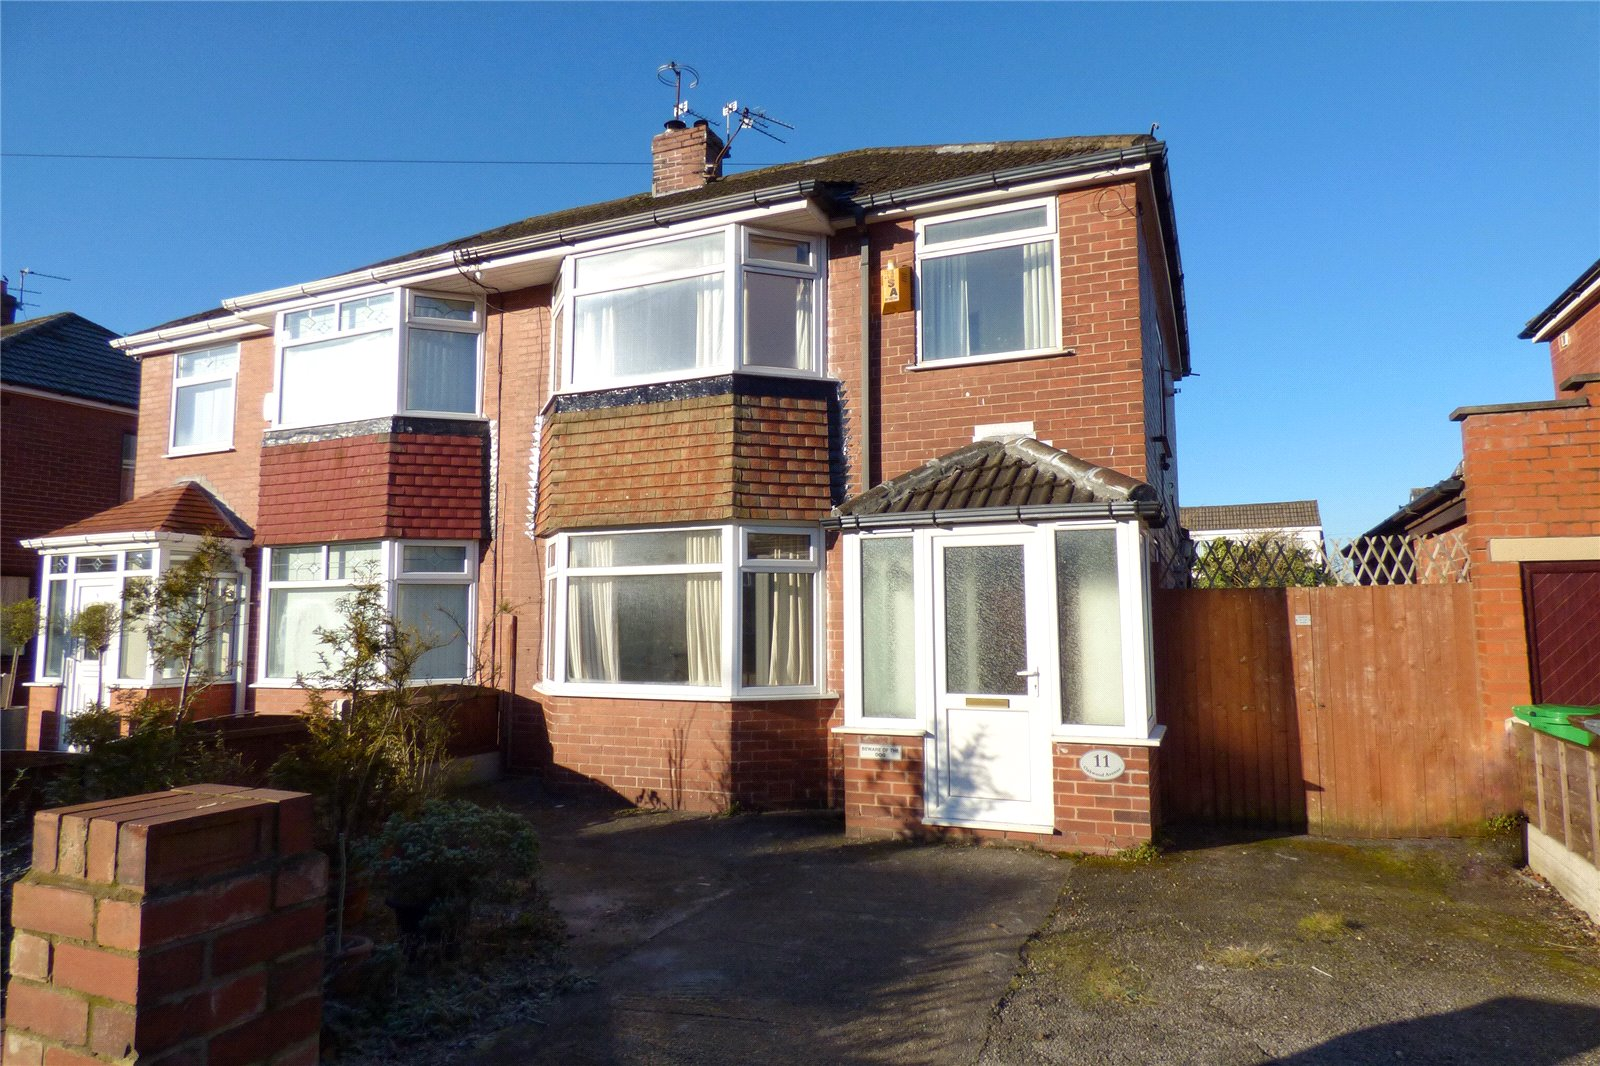 3 Bedrooms Semi Detached House for sale in Oakwood Avenue, New Moston, Manchester, M40